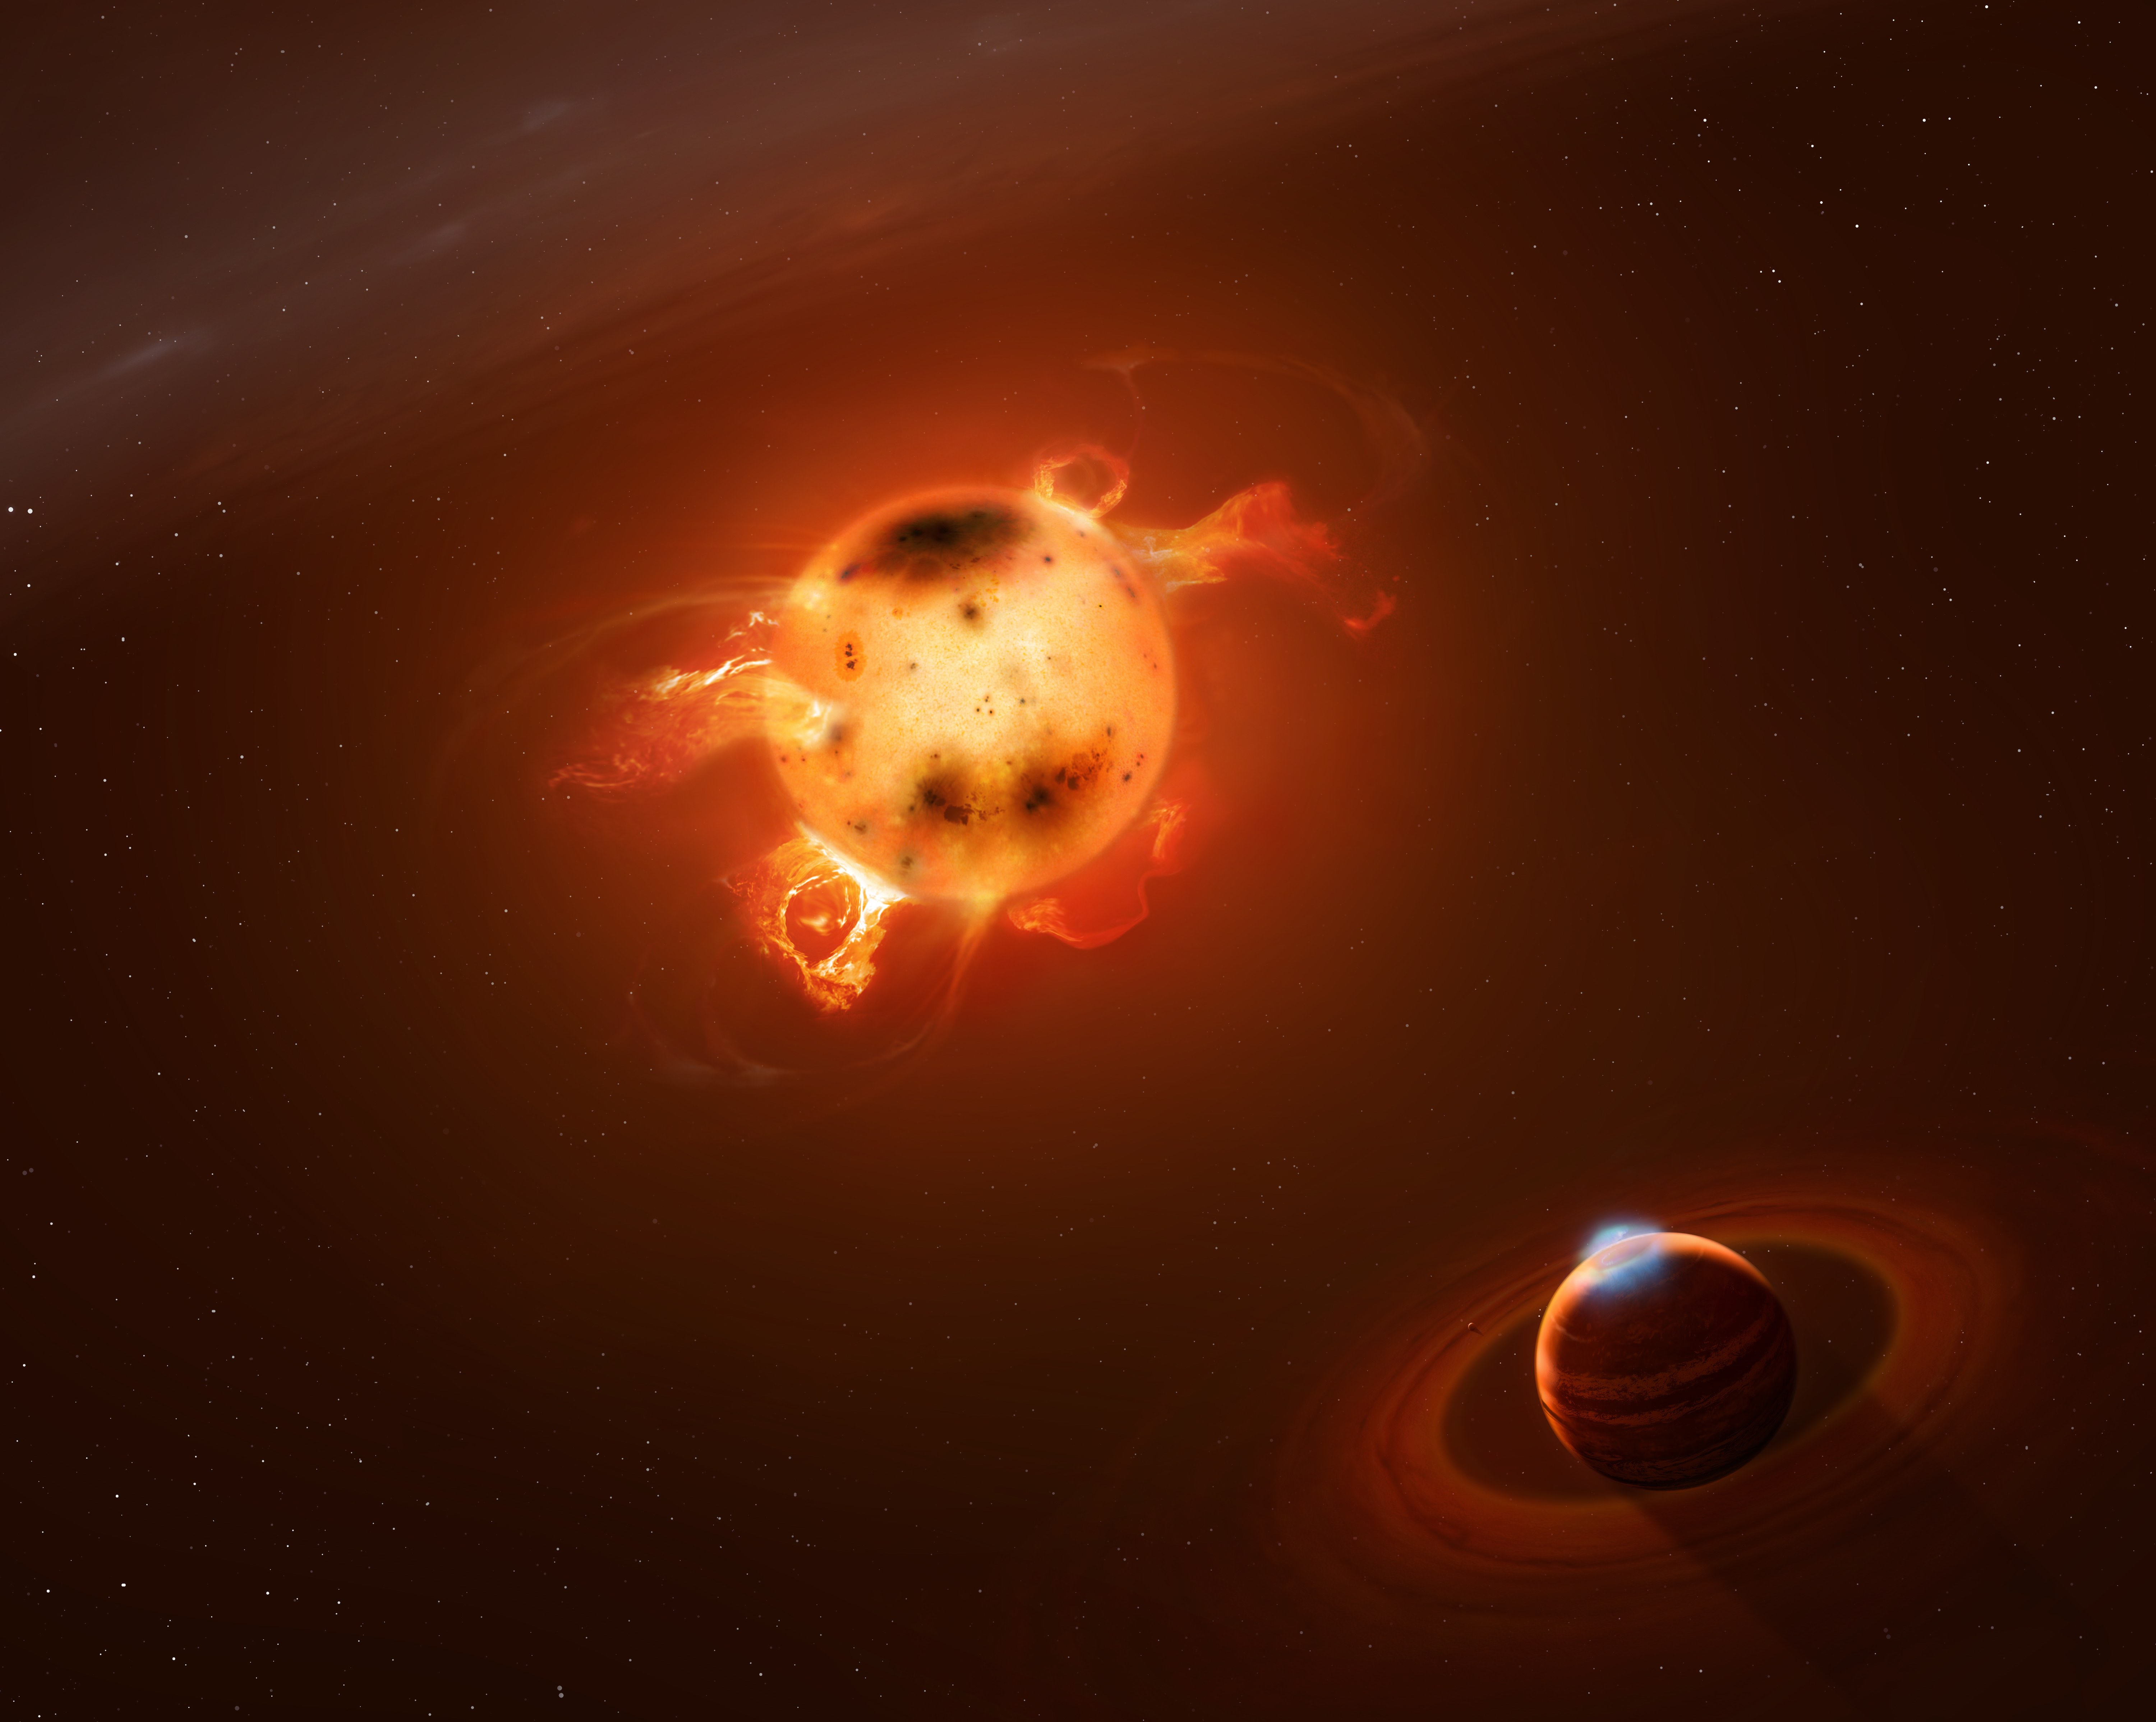 Artist view of the giant planet orbiting the infant sun V830 Tau (credit Mark A. Garlick / markgarlick.com)